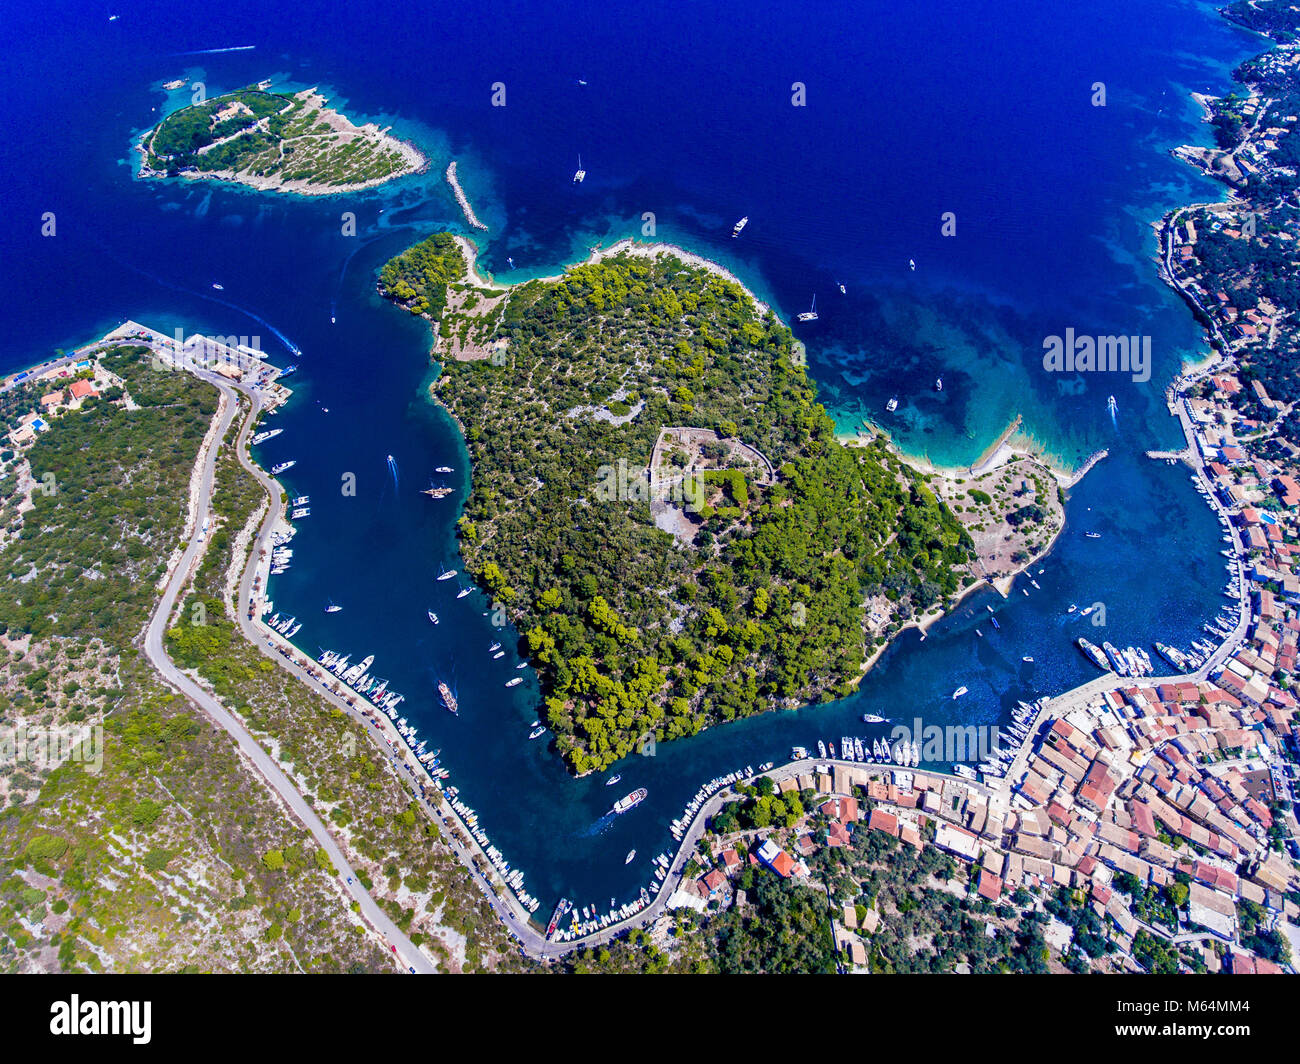 Gaios, capital city of Paxos Island near Corfu, aerial view. Grand canal, old harbor and fortress visible from above. Stock Photo